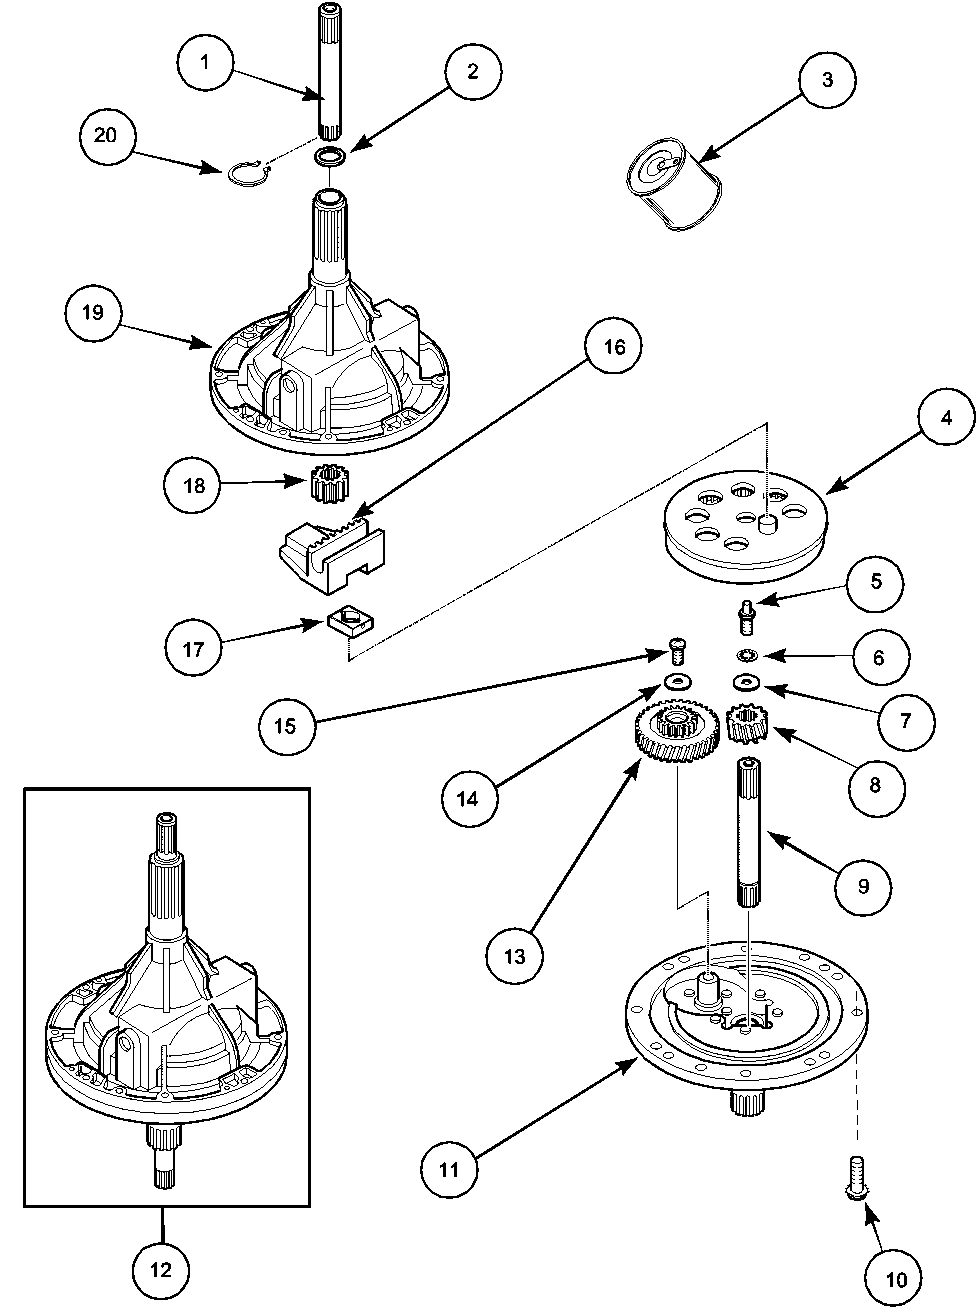 medium resolution of lwa40aw2 top loading washer transmission assembly parts diagram